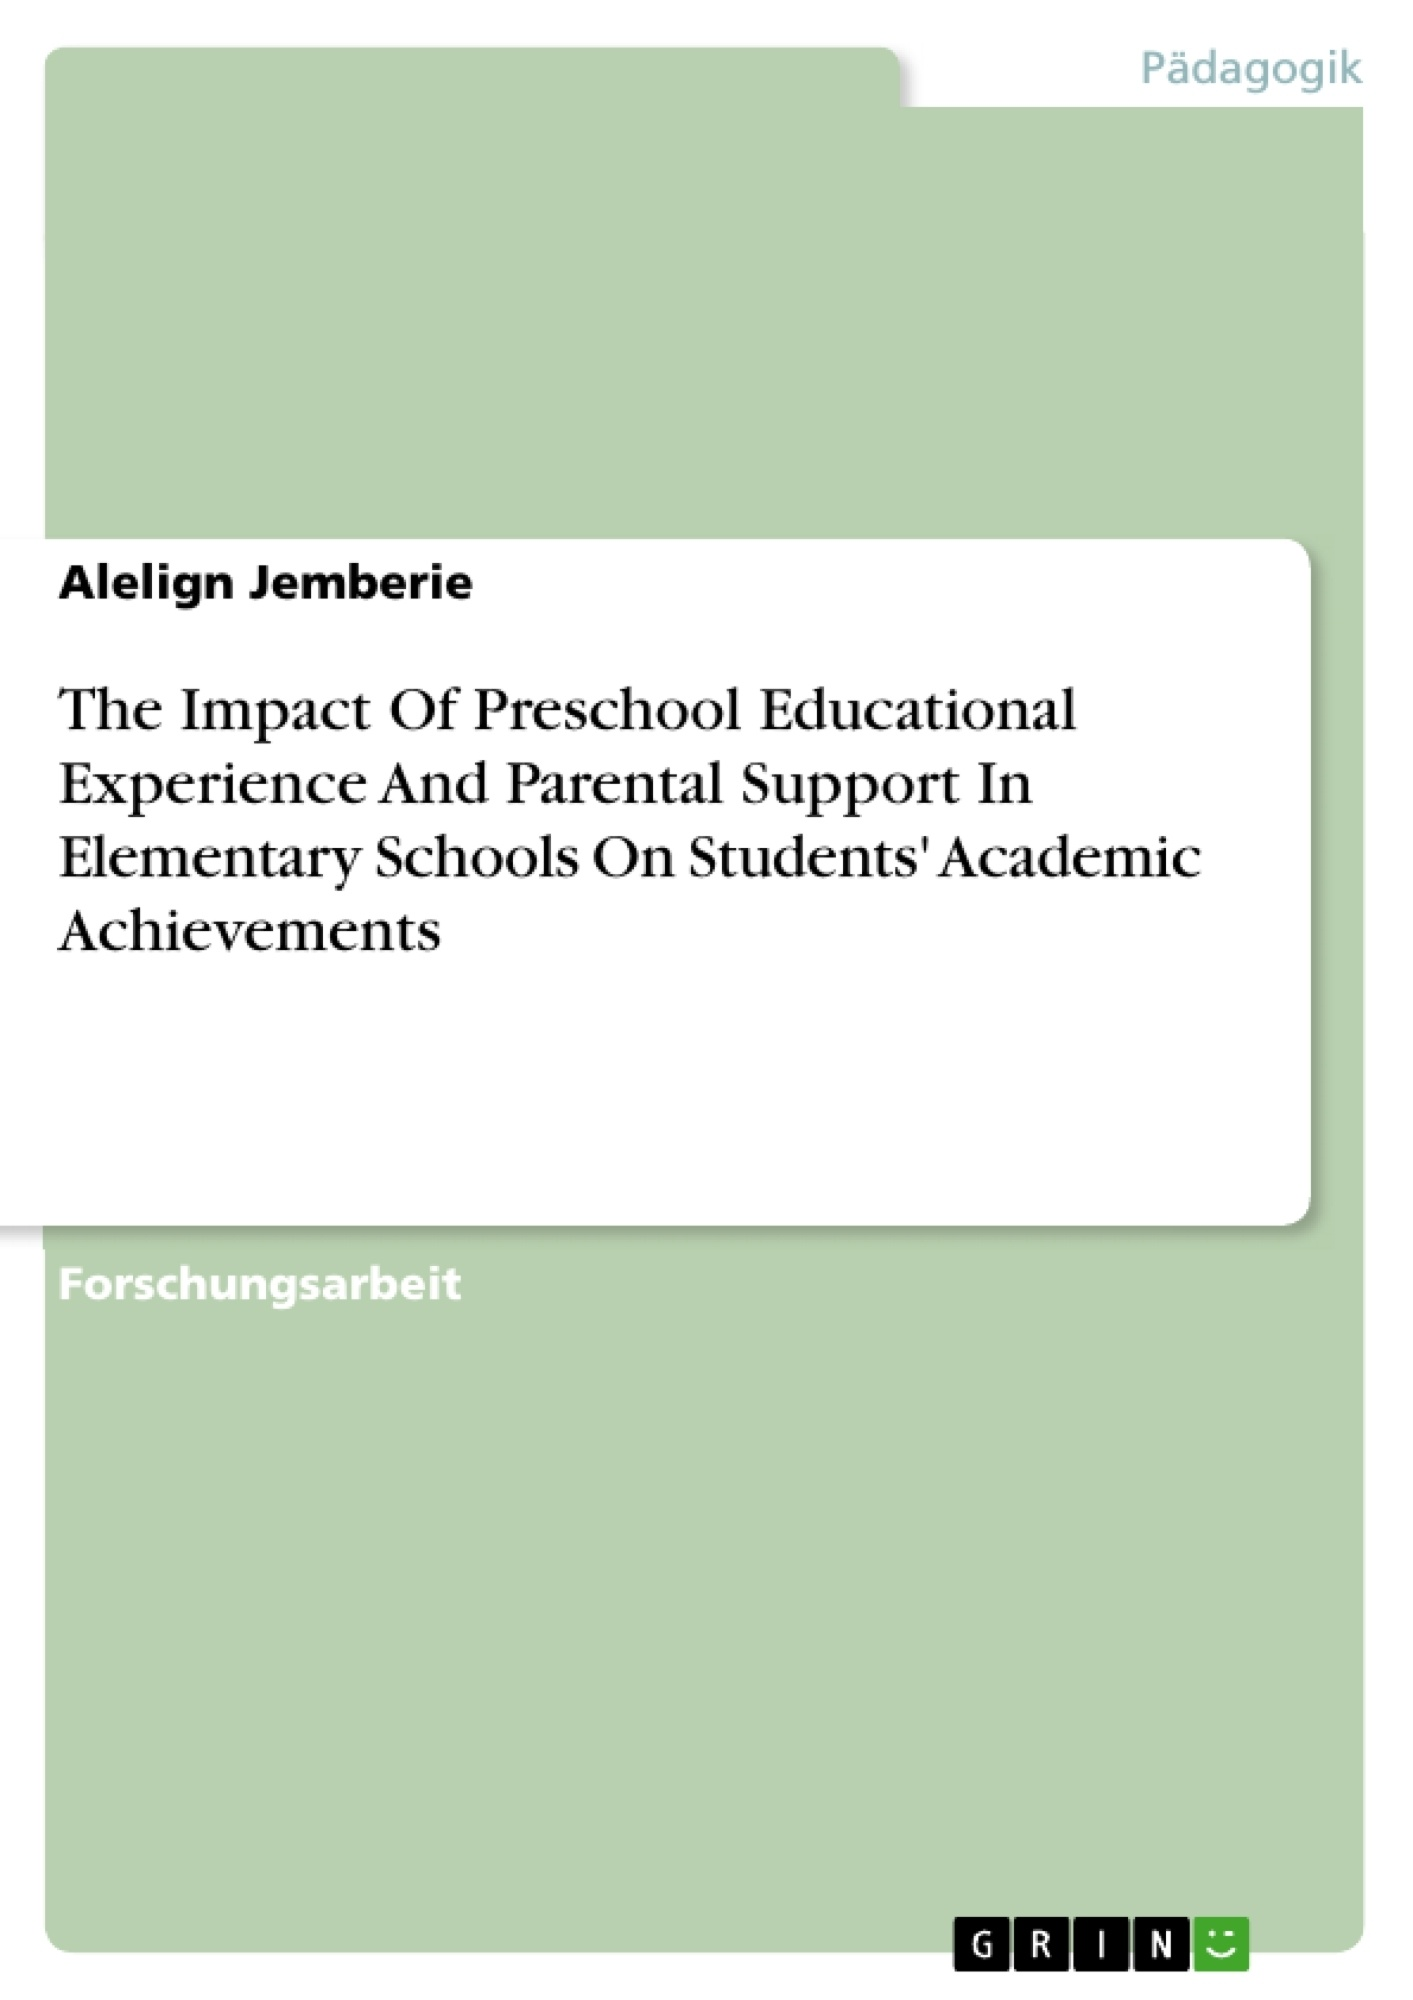 Titel: The Impact Of Preschool Educational Experience And Parental Support In Elementary Schools On Students' Academic Achievements